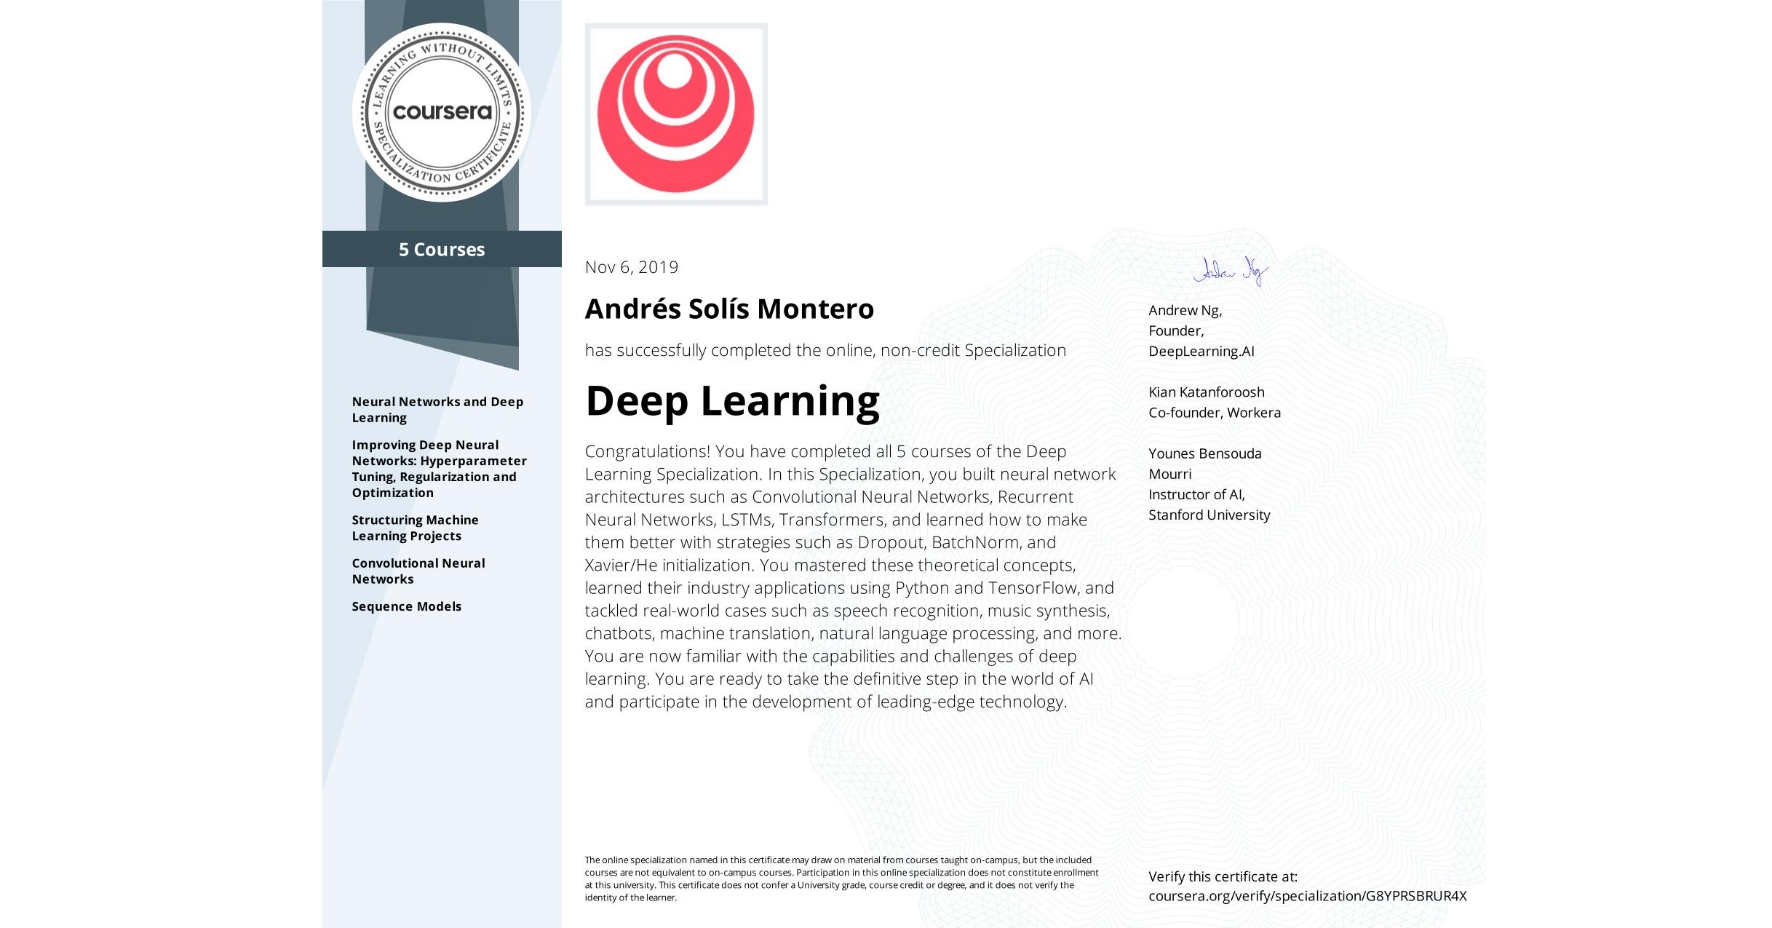 View certificate for Andrés Solís Montero, Deep Learning, offered through Coursera. Congratulations! You have completed all 5 courses of the Deep Learning Specialization.  In this Specialization, you built neural network architectures such as Convolutional Neural Networks, Recurrent Neural Networks, LSTMs, Transformers, and learned how to make them better with strategies such as Dropout, BatchNorm, and Xavier/He initialization. You mastered these theoretical concepts, learned their industry applications using Python and TensorFlow, and tackled real-world cases such as speech recognition, music synthesis, chatbots, machine translation, natural language processing, and more.  You are now familiar with the capabilities and challenges of deep learning. You are ready to take the definitive step in the world of AI and participate in the development of leading-edge technology.